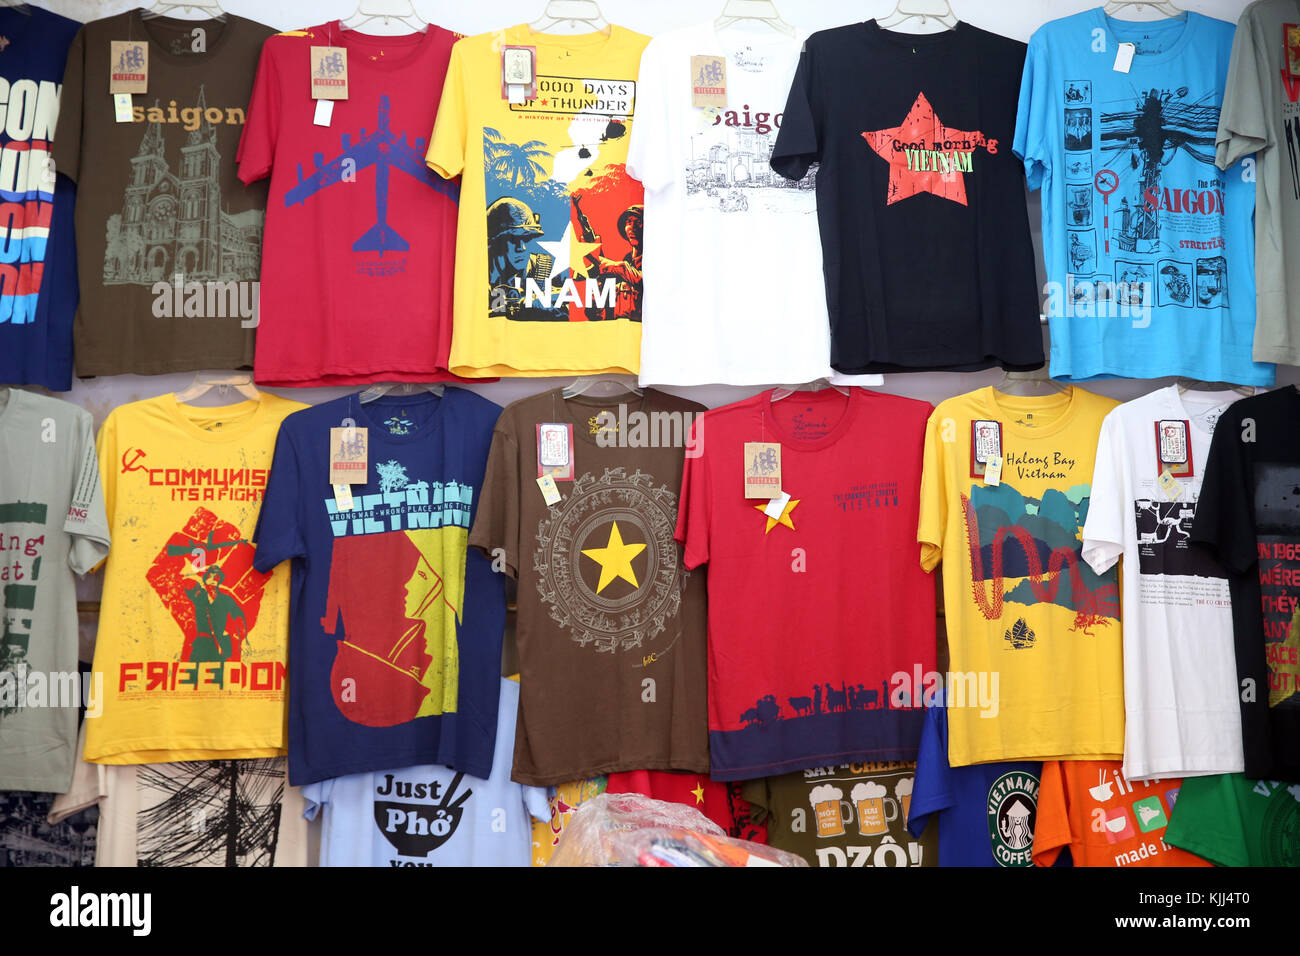 Boutique Textile. Vietnam t-shirts. Ho Chi Minh Ville. Le Vietnam. Photo Stock